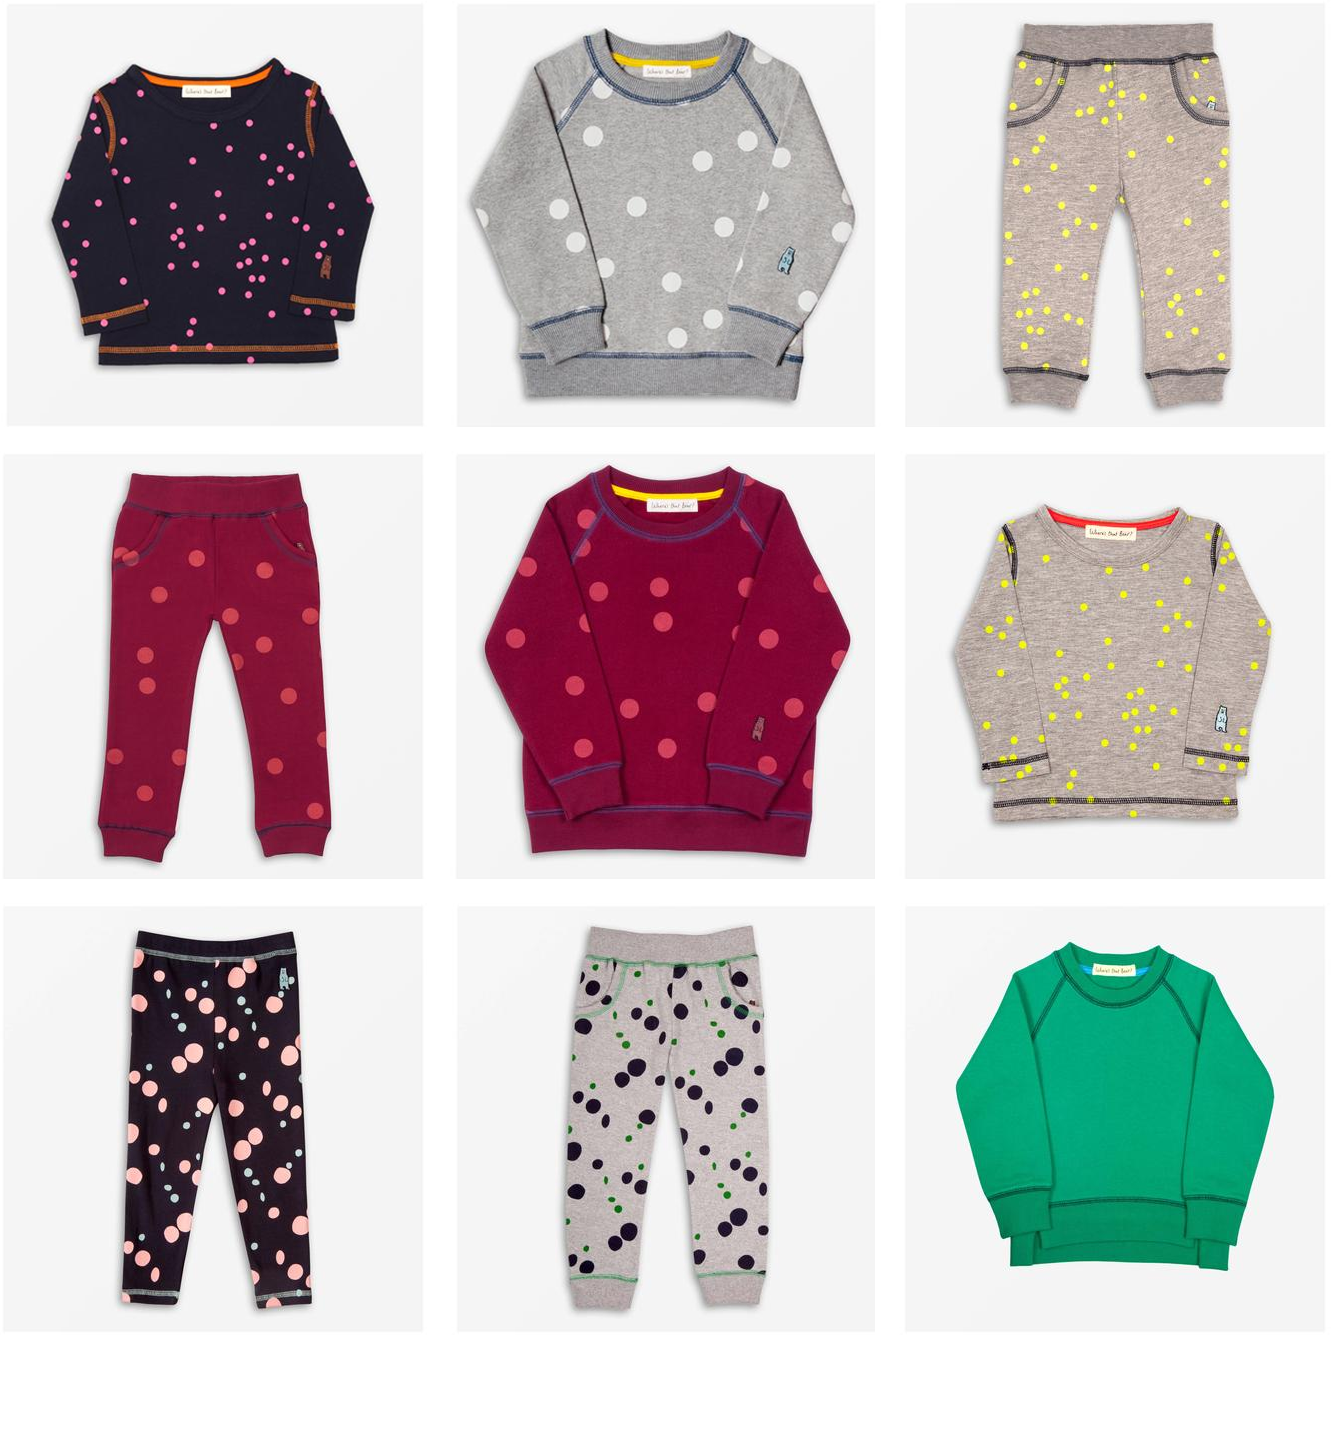 Go Dotty! Our jersey essentials are covered in multi-coloured dots. Shop the range today and get an extra 10% off.